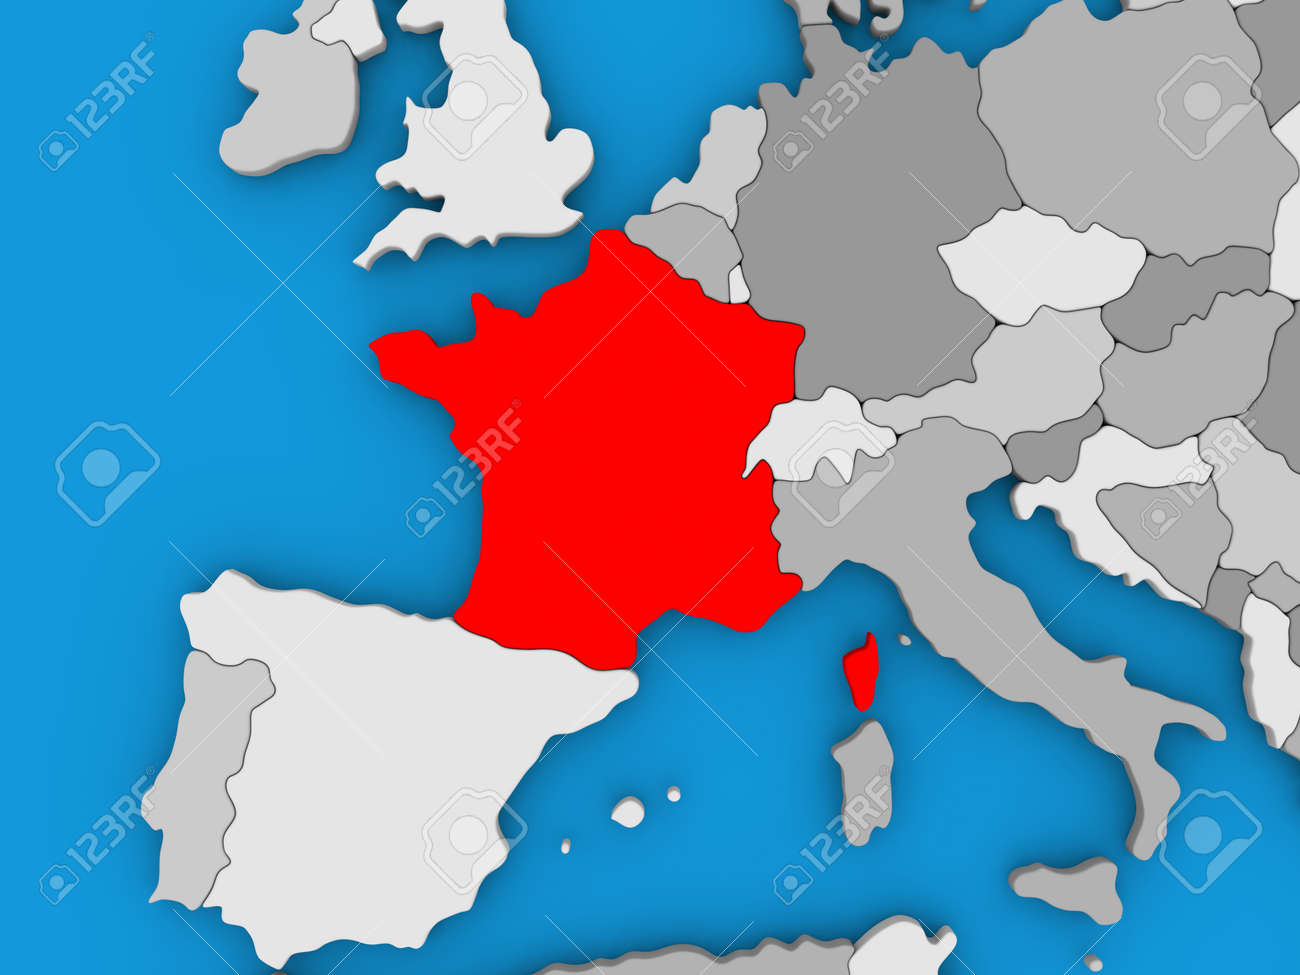 Map of france on globe highlighted in red 3d illustration stock illustration map of france on globe highlighted in red 3d illustration gumiabroncs Images